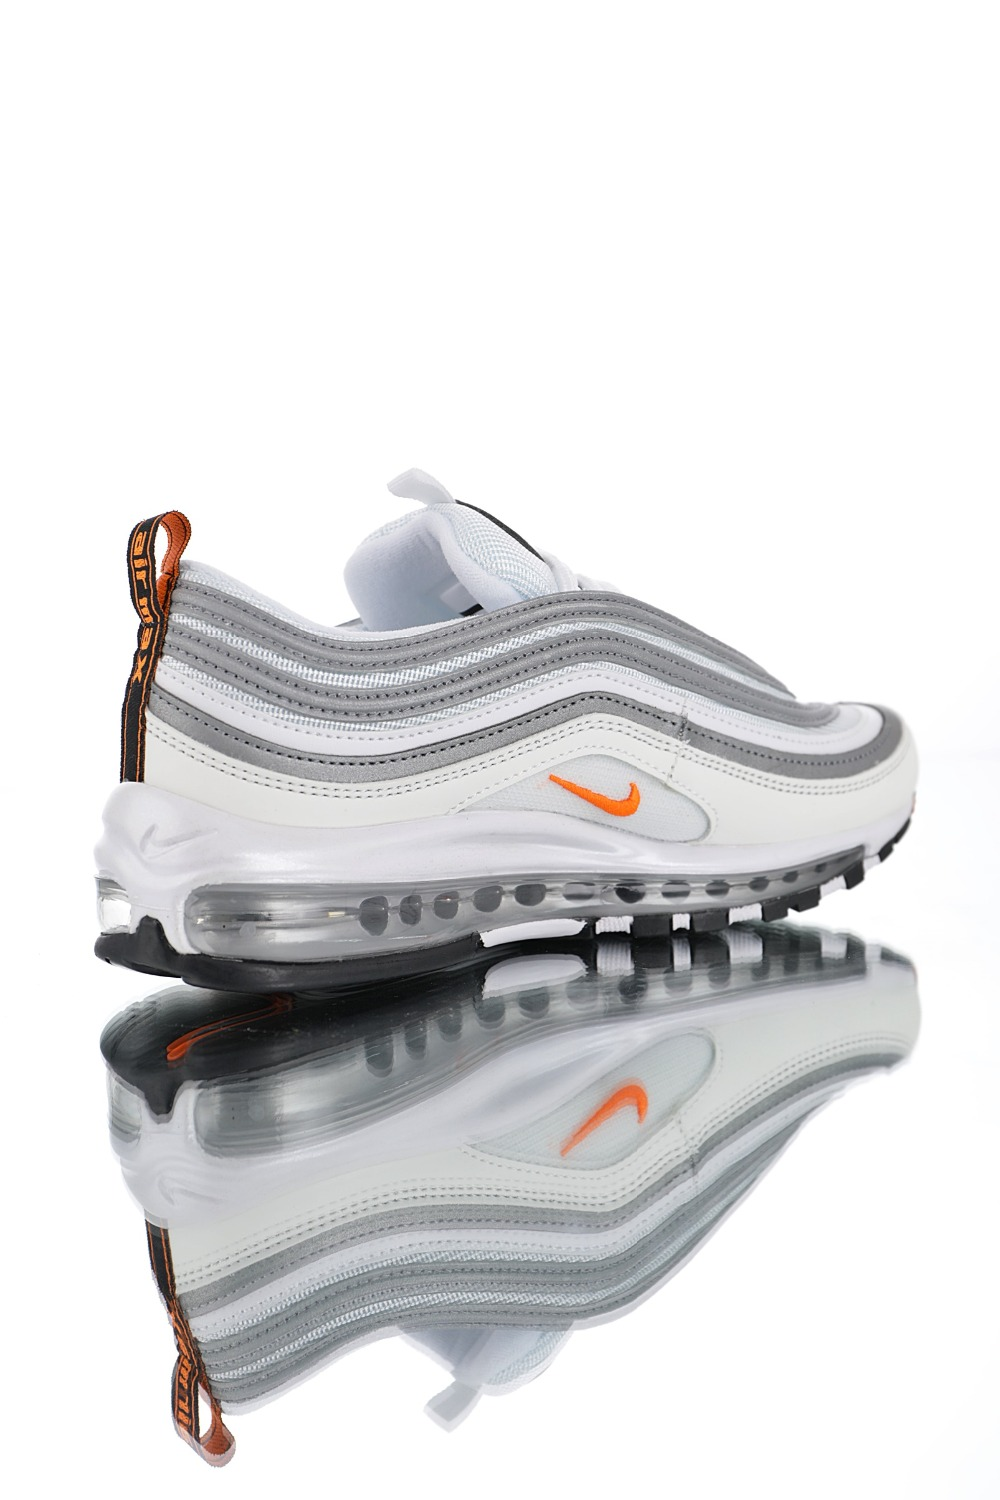 a5699a3c36 High Quality Original Nike Air Max 97